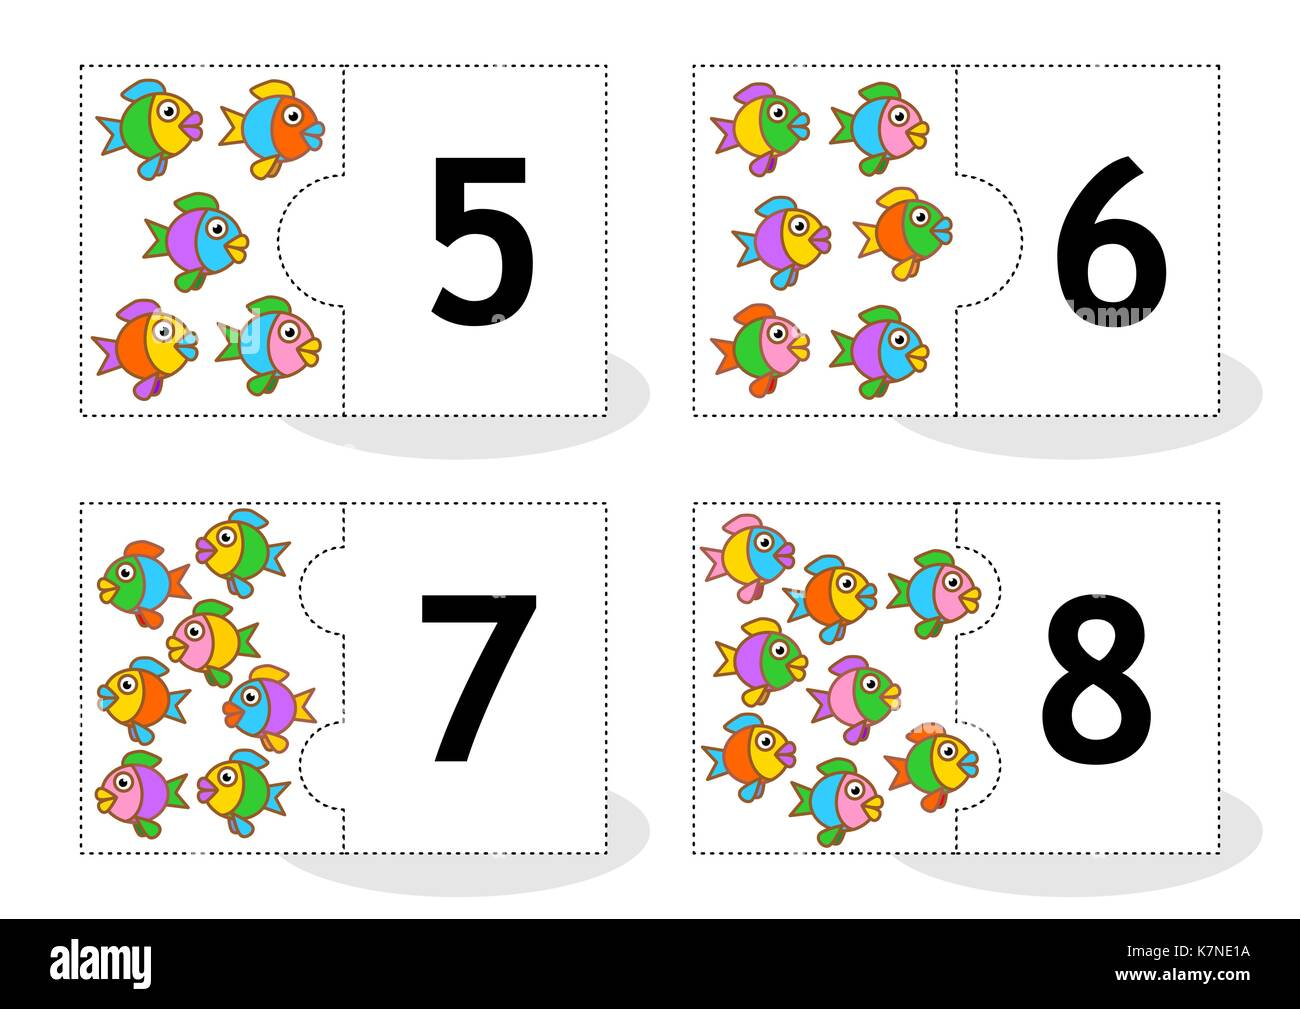 Learn counting 2-part puzzle cards to cut out and play, fish themed, numbers 5 - 8 - Stock Image